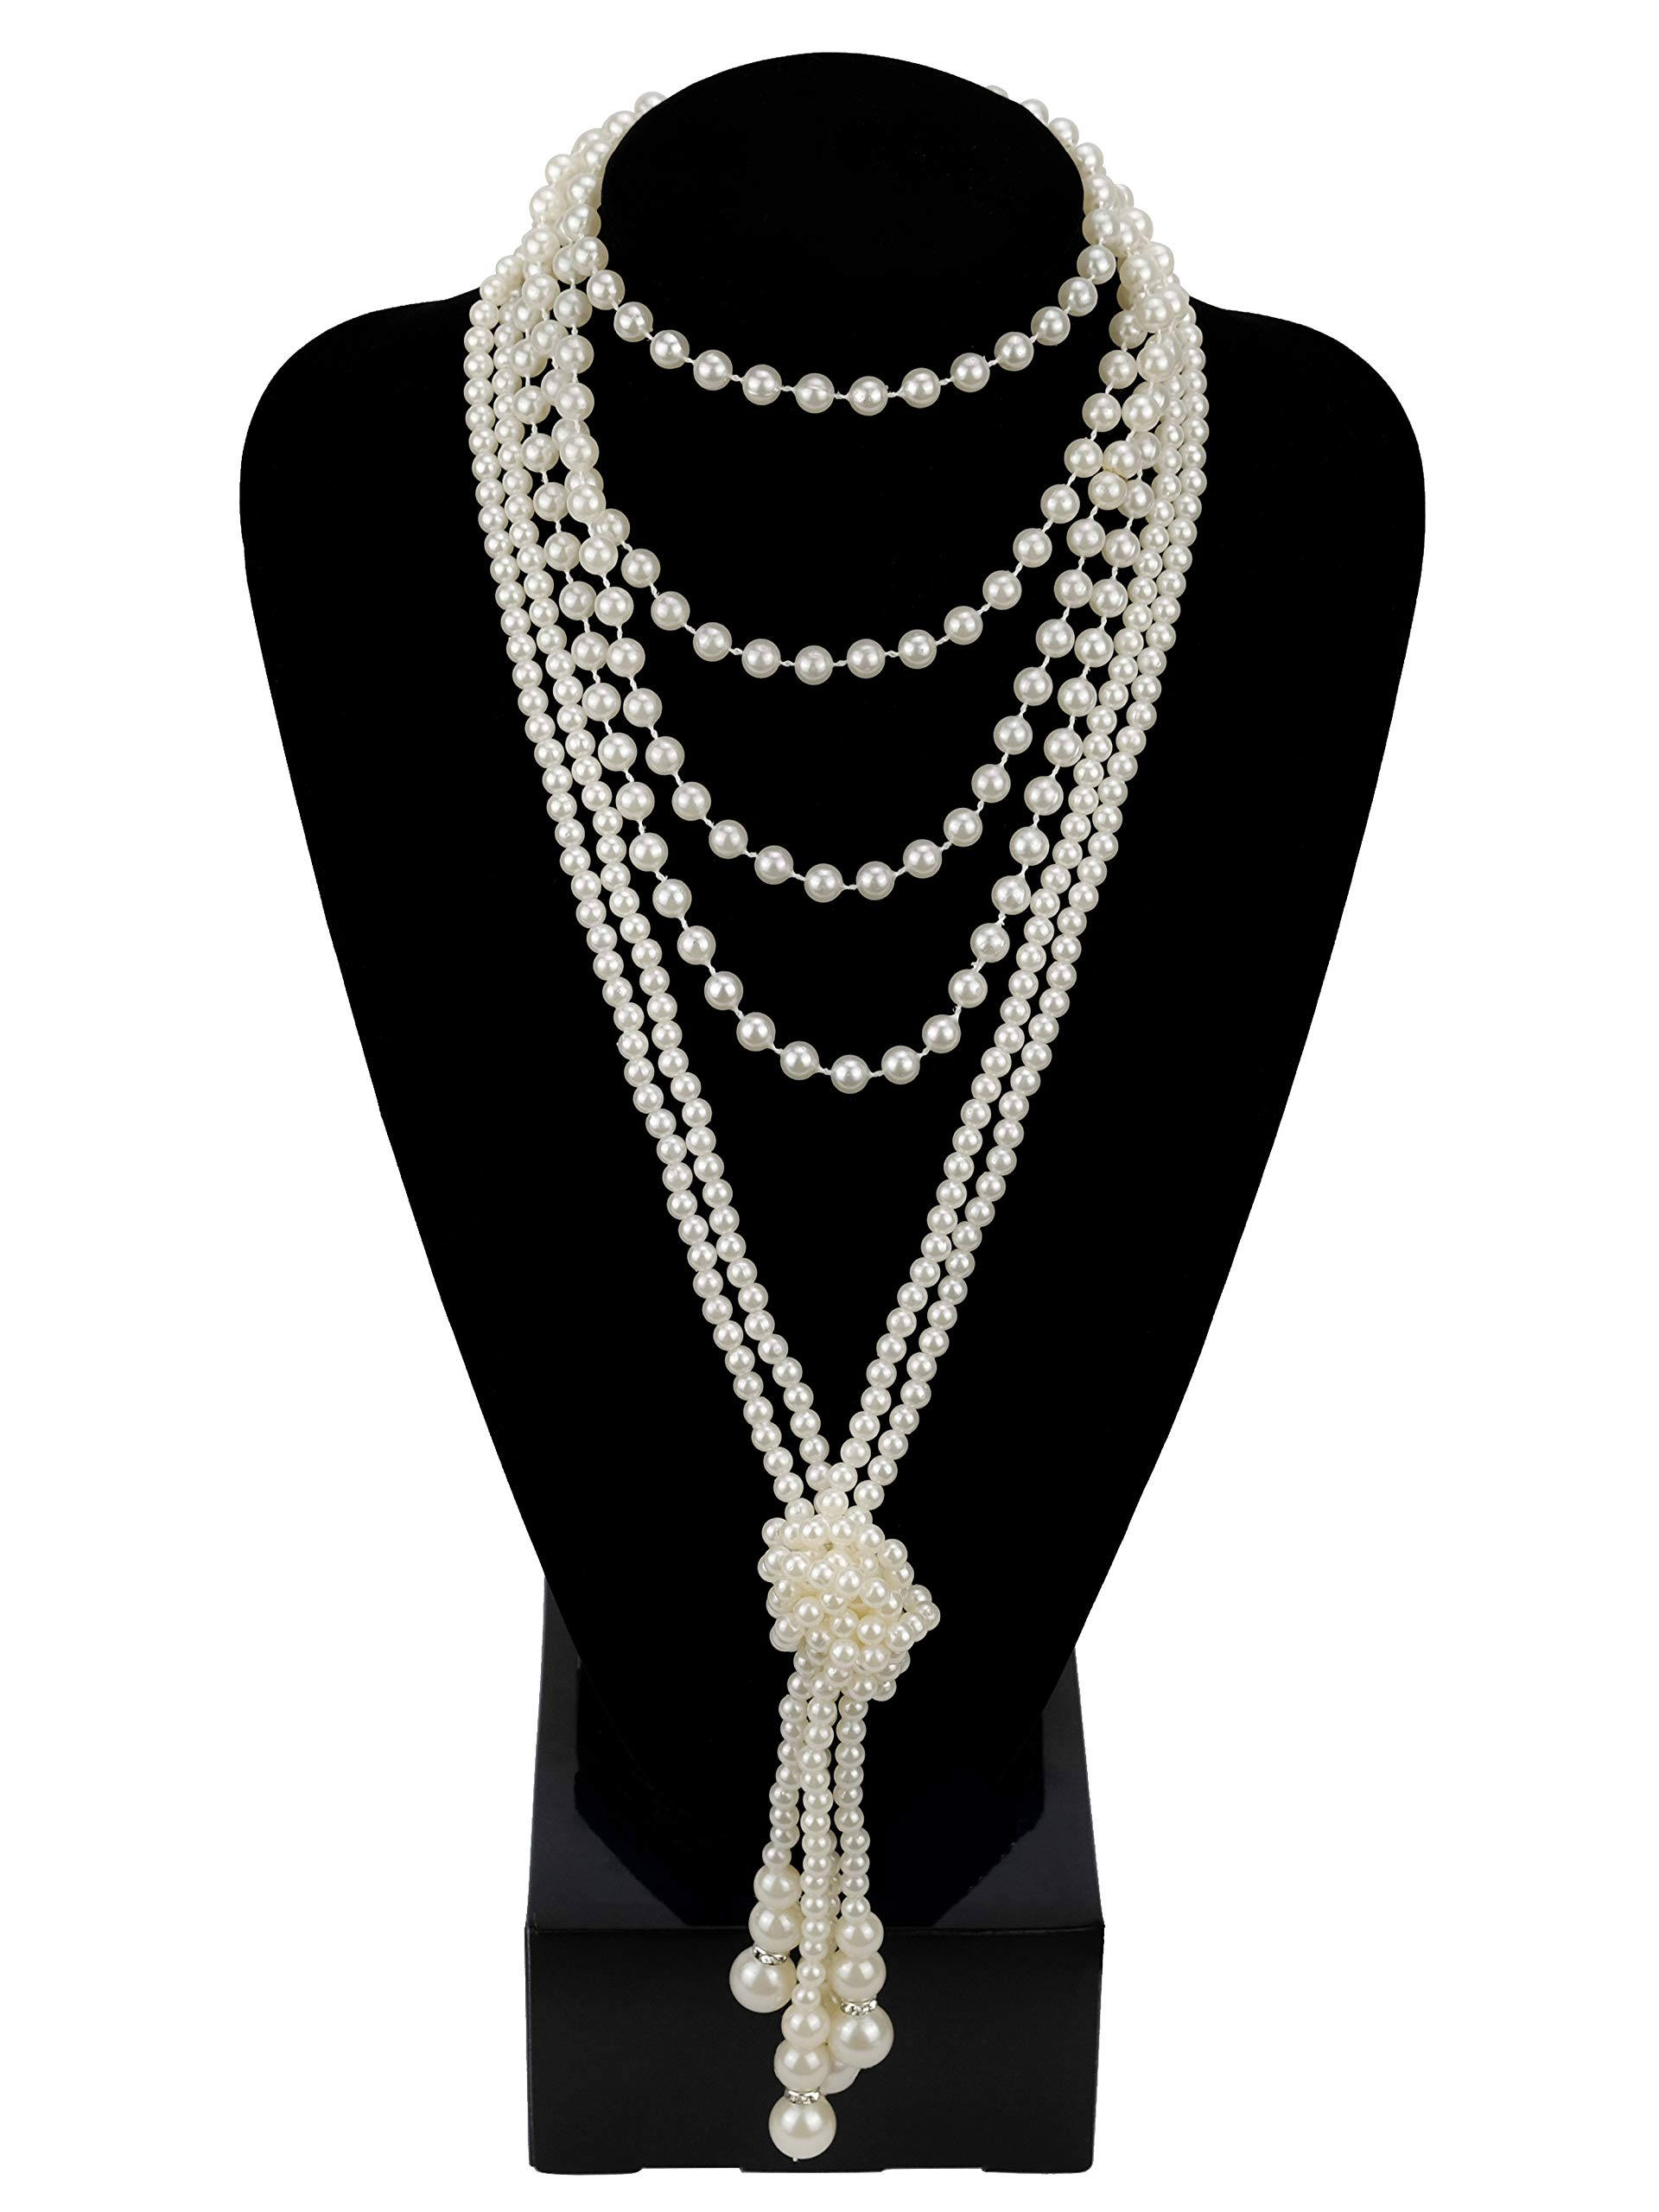 Zivyes Fashion Faux Pearls 1920s Pearls Necklace Gatsby Accessories 59'' and 45'' Knot Long Necklace for Women